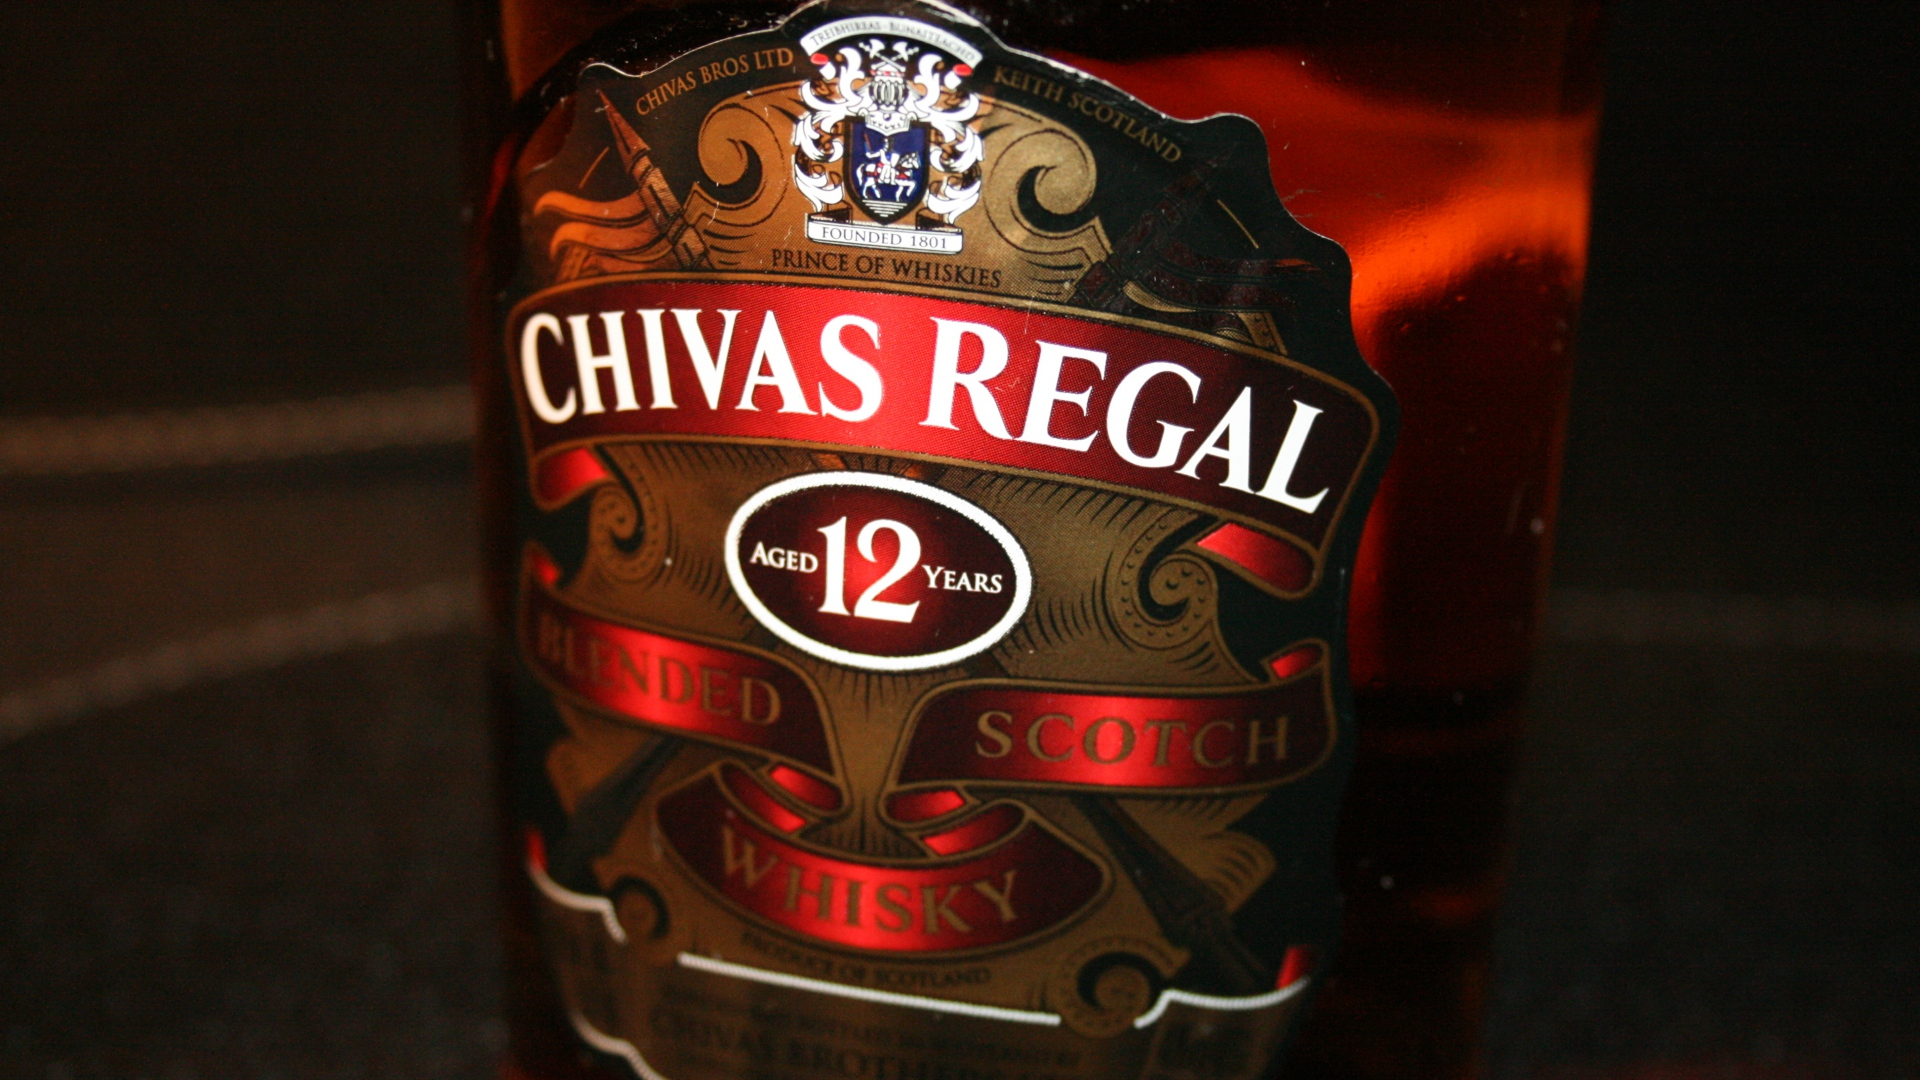 Download wallpaper 1920x1080 chivas regal whiskey alcohol full hd chivas regal whiskey alcohol voltagebd